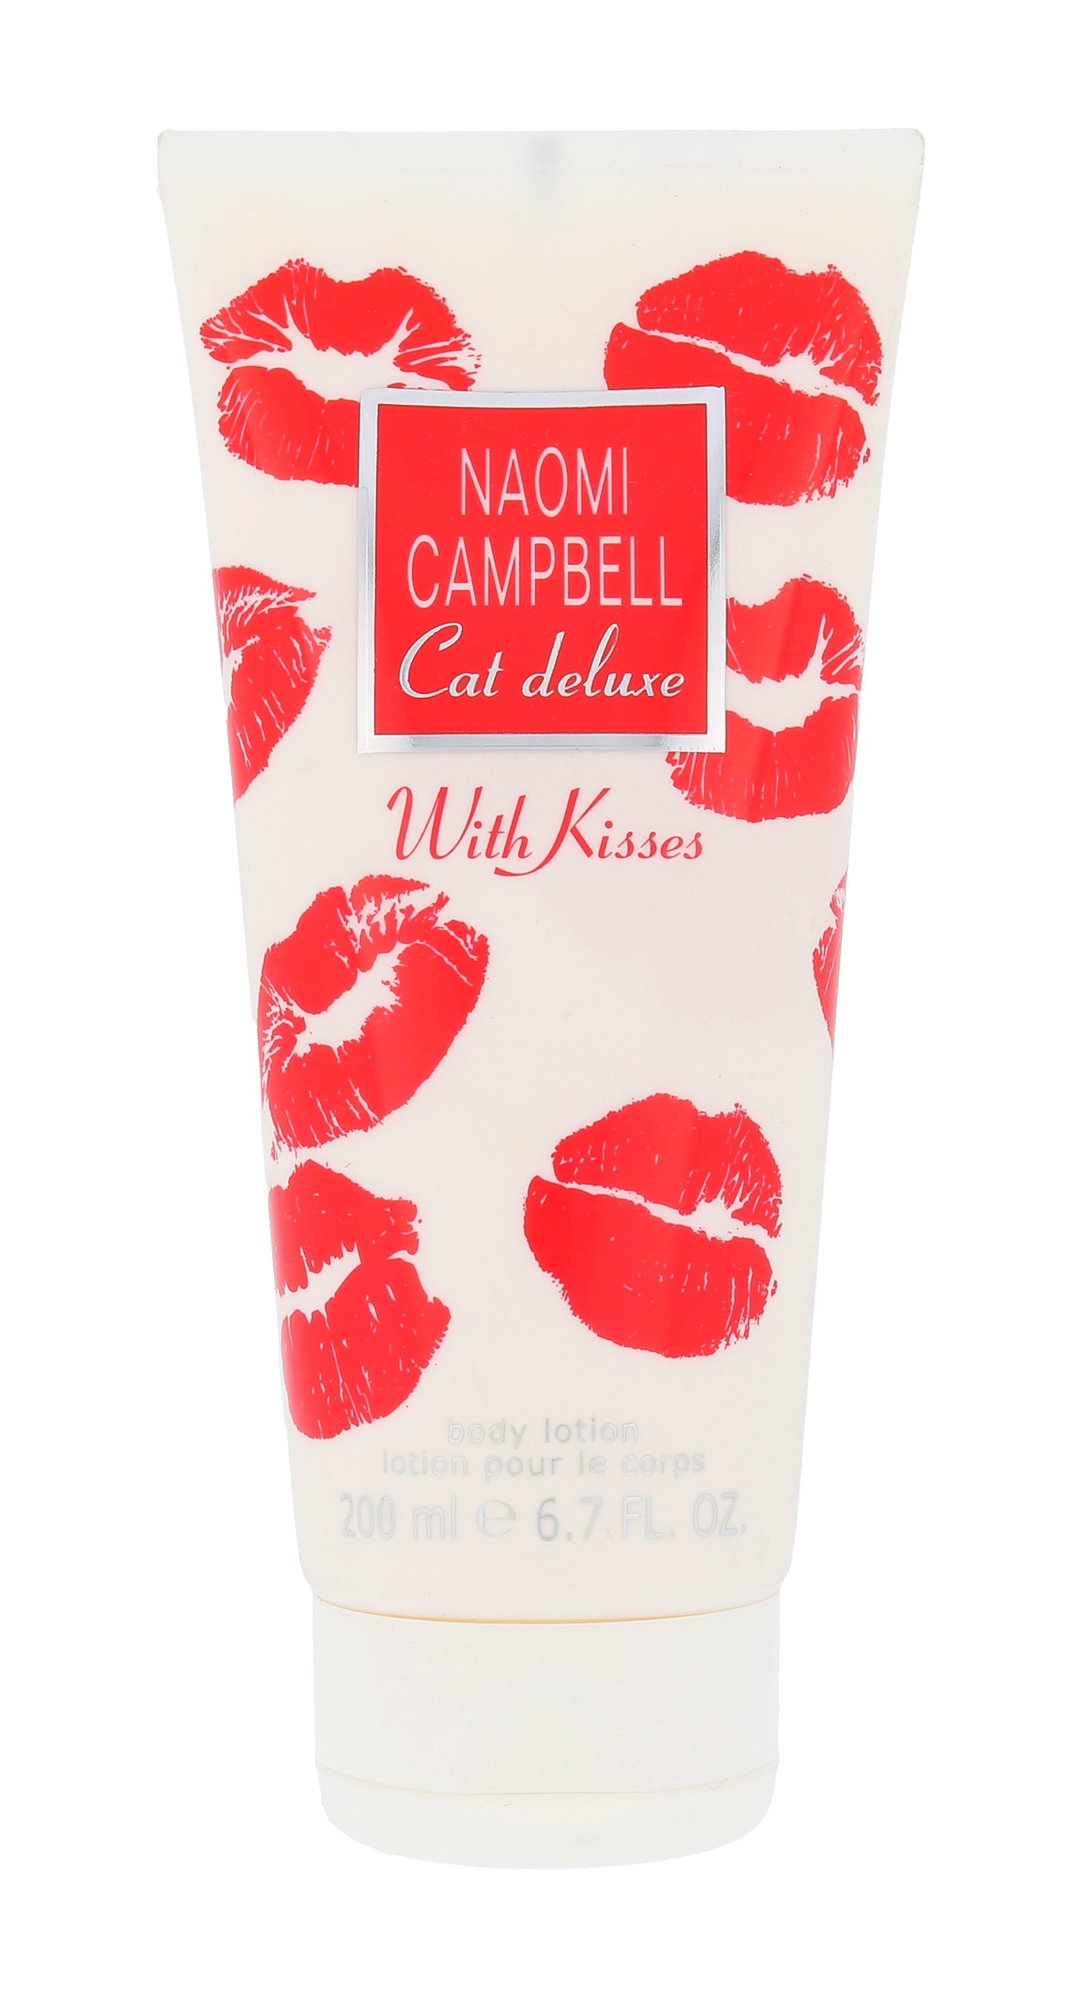 Naomi Campbell Cat Deluxe Body lotion 200ml